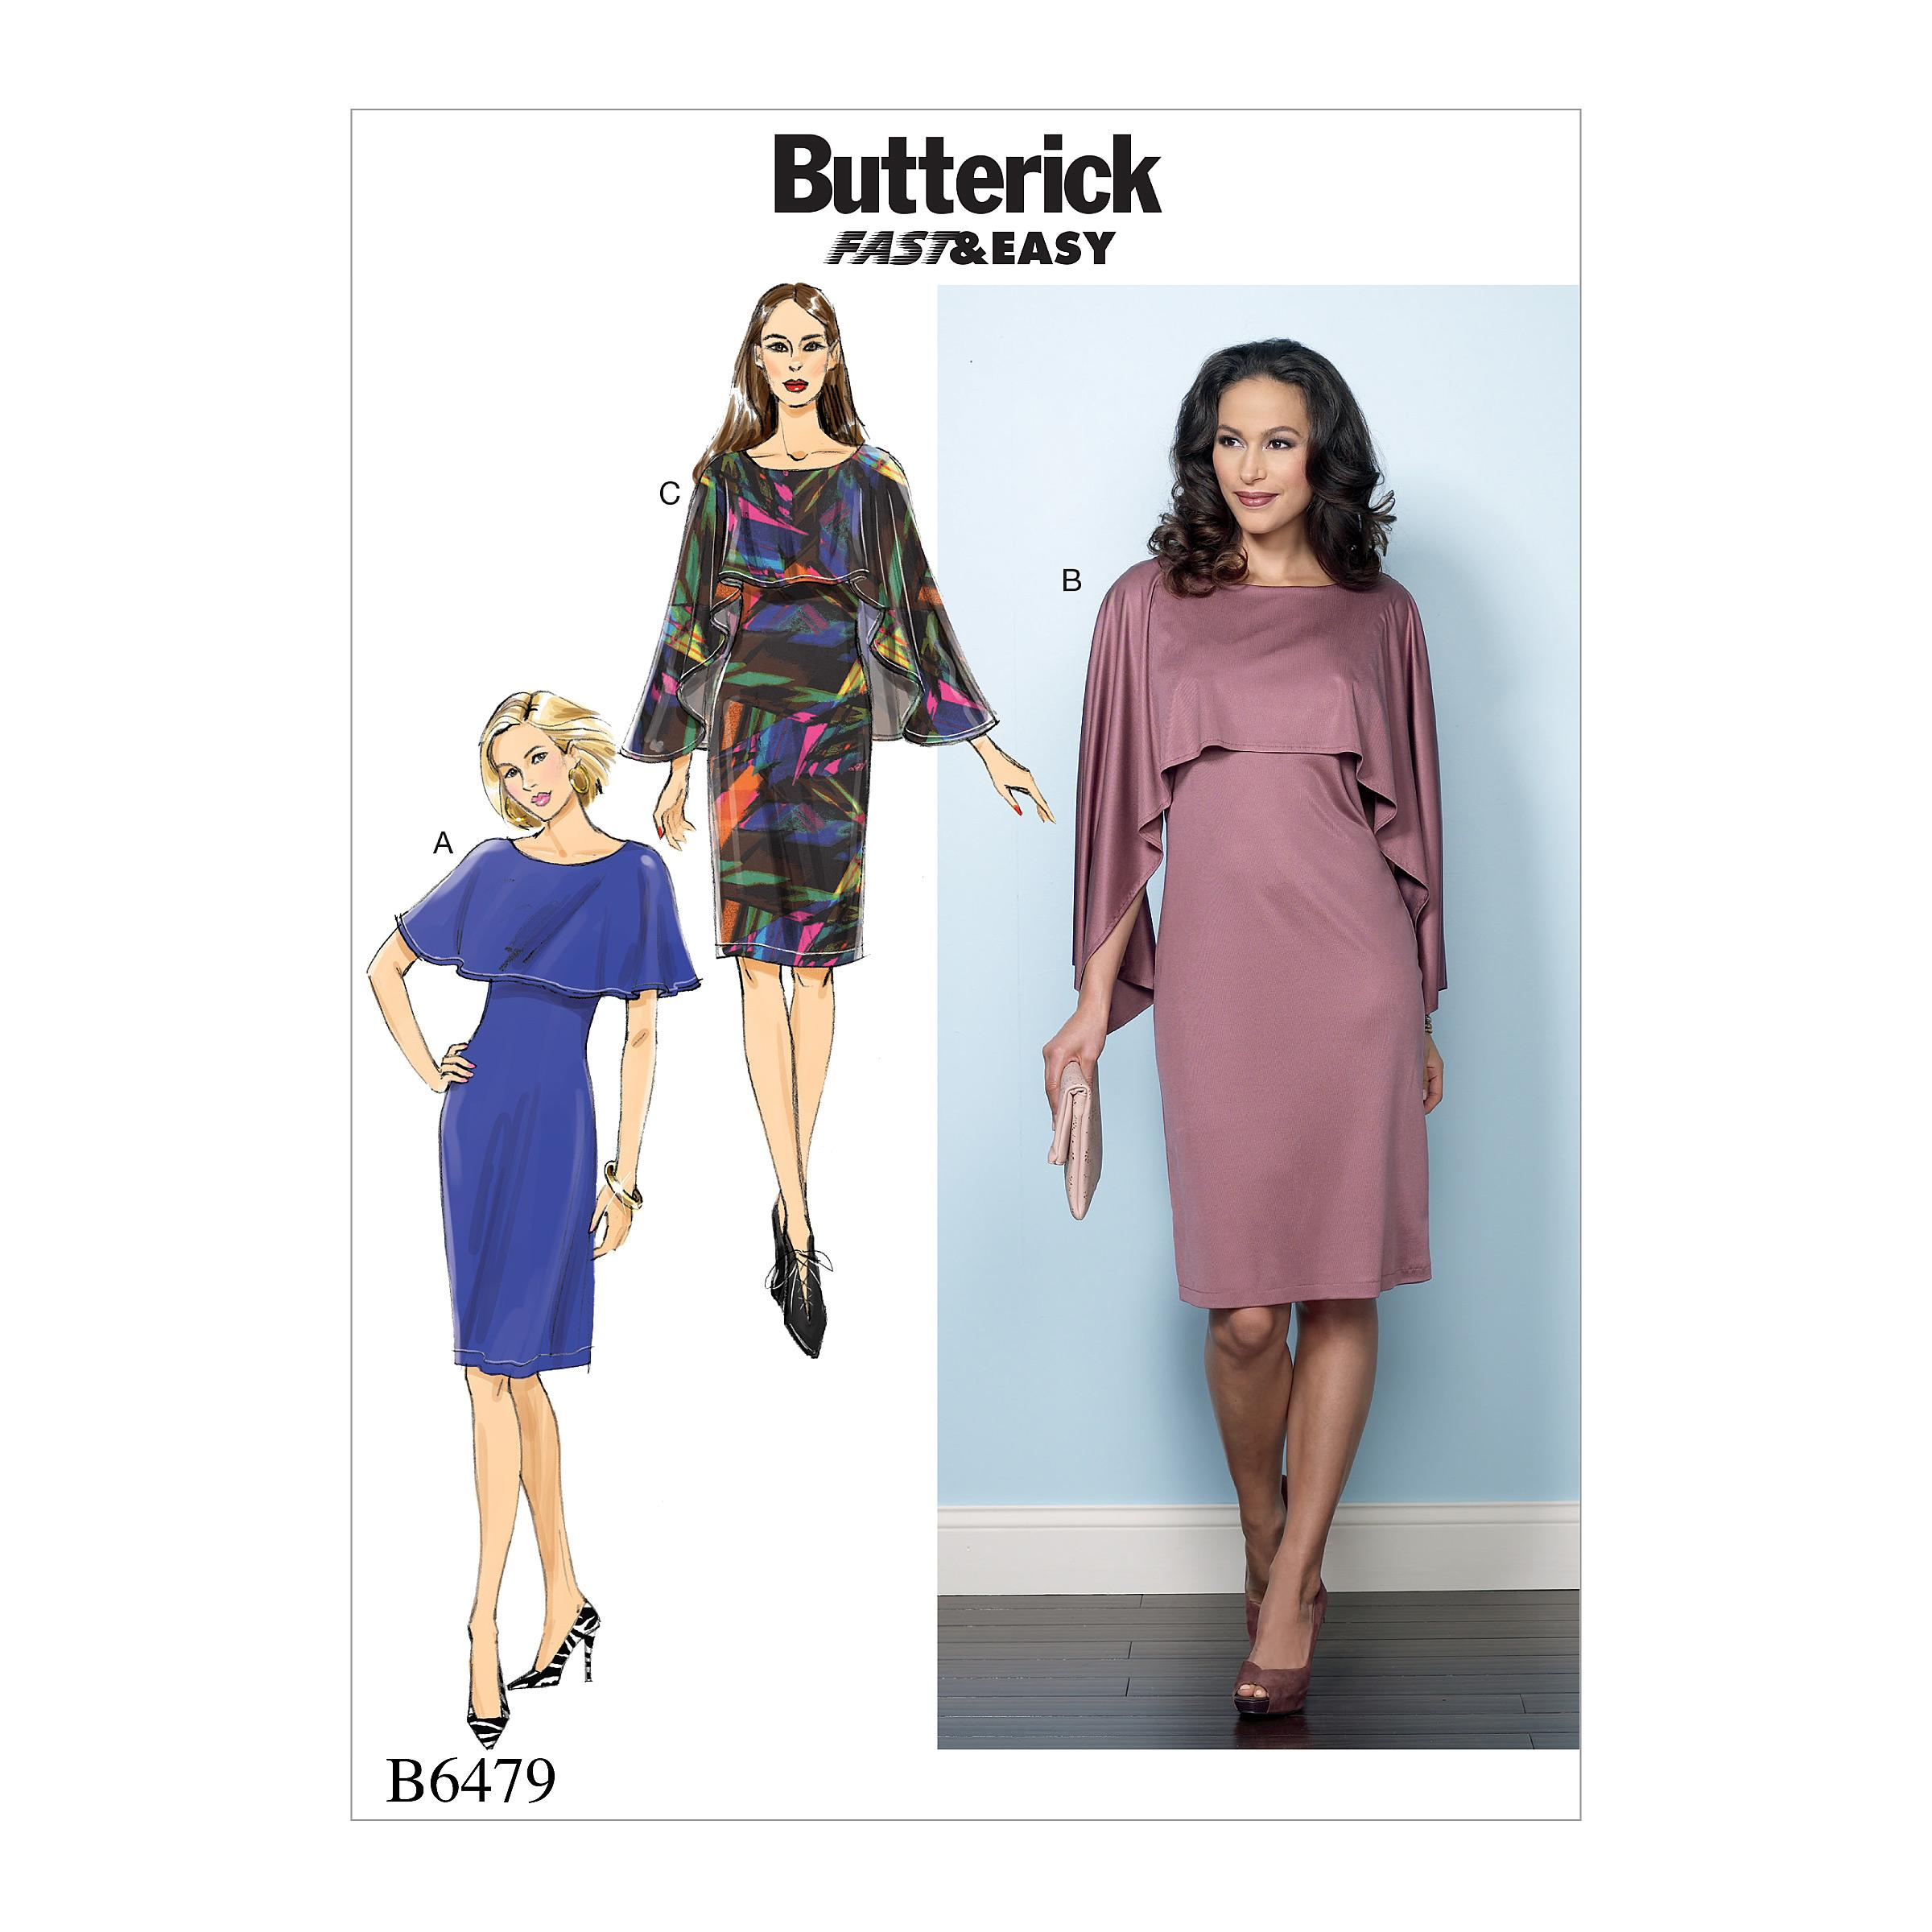 Butterick B6479 Misses' Pullover Dresses with Attached Capelets